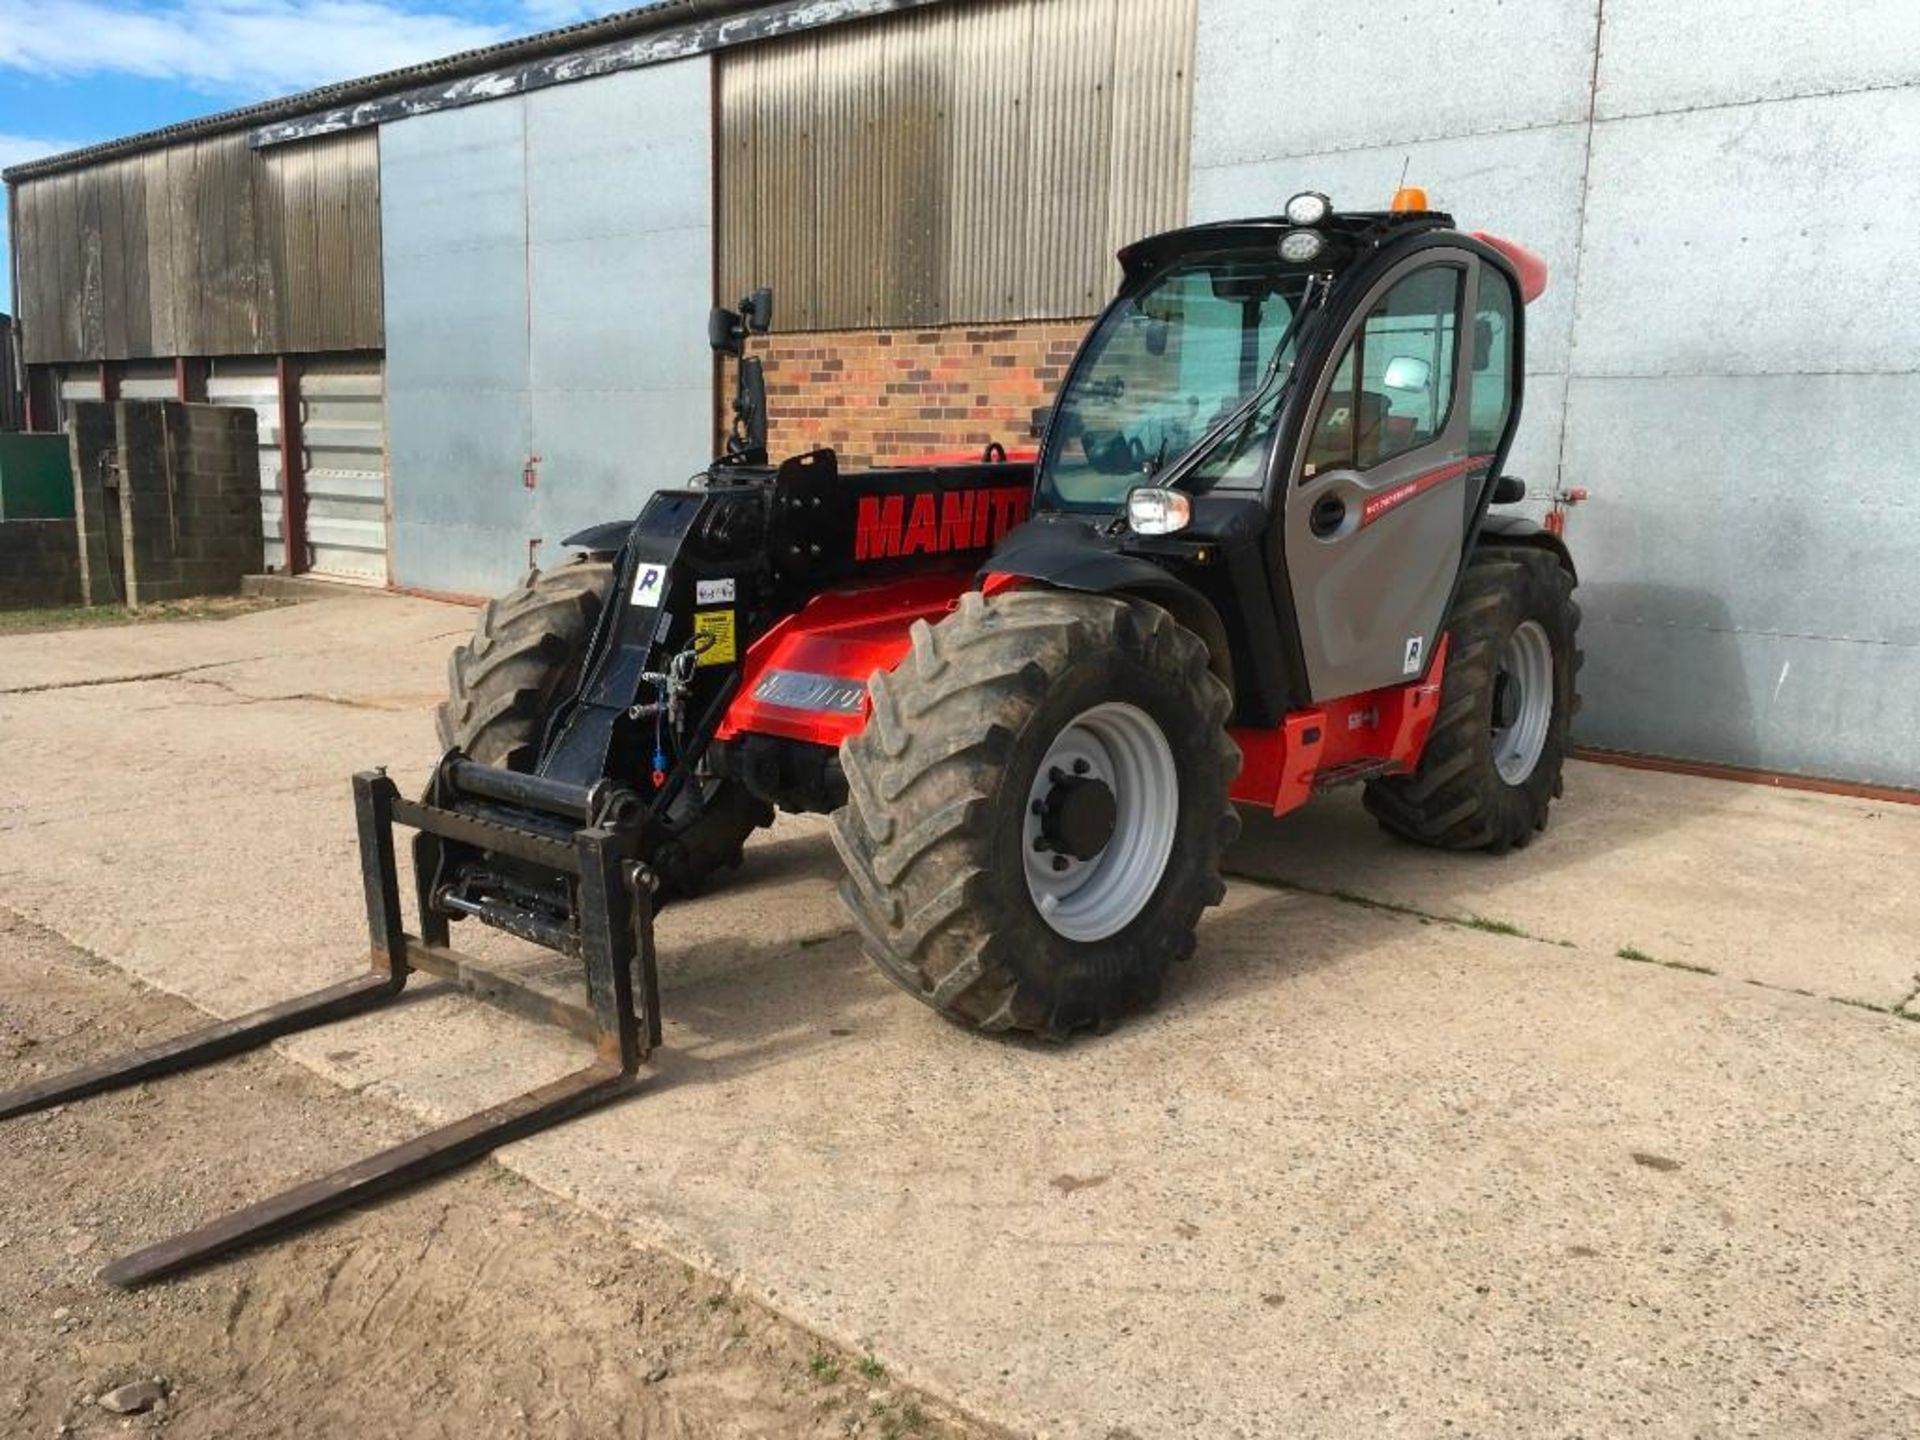 2017 Manitou MLT 737-130 PS+ Elite telehandler with rear pick up hitch, power shift, air seat, elect - Image 7 of 22